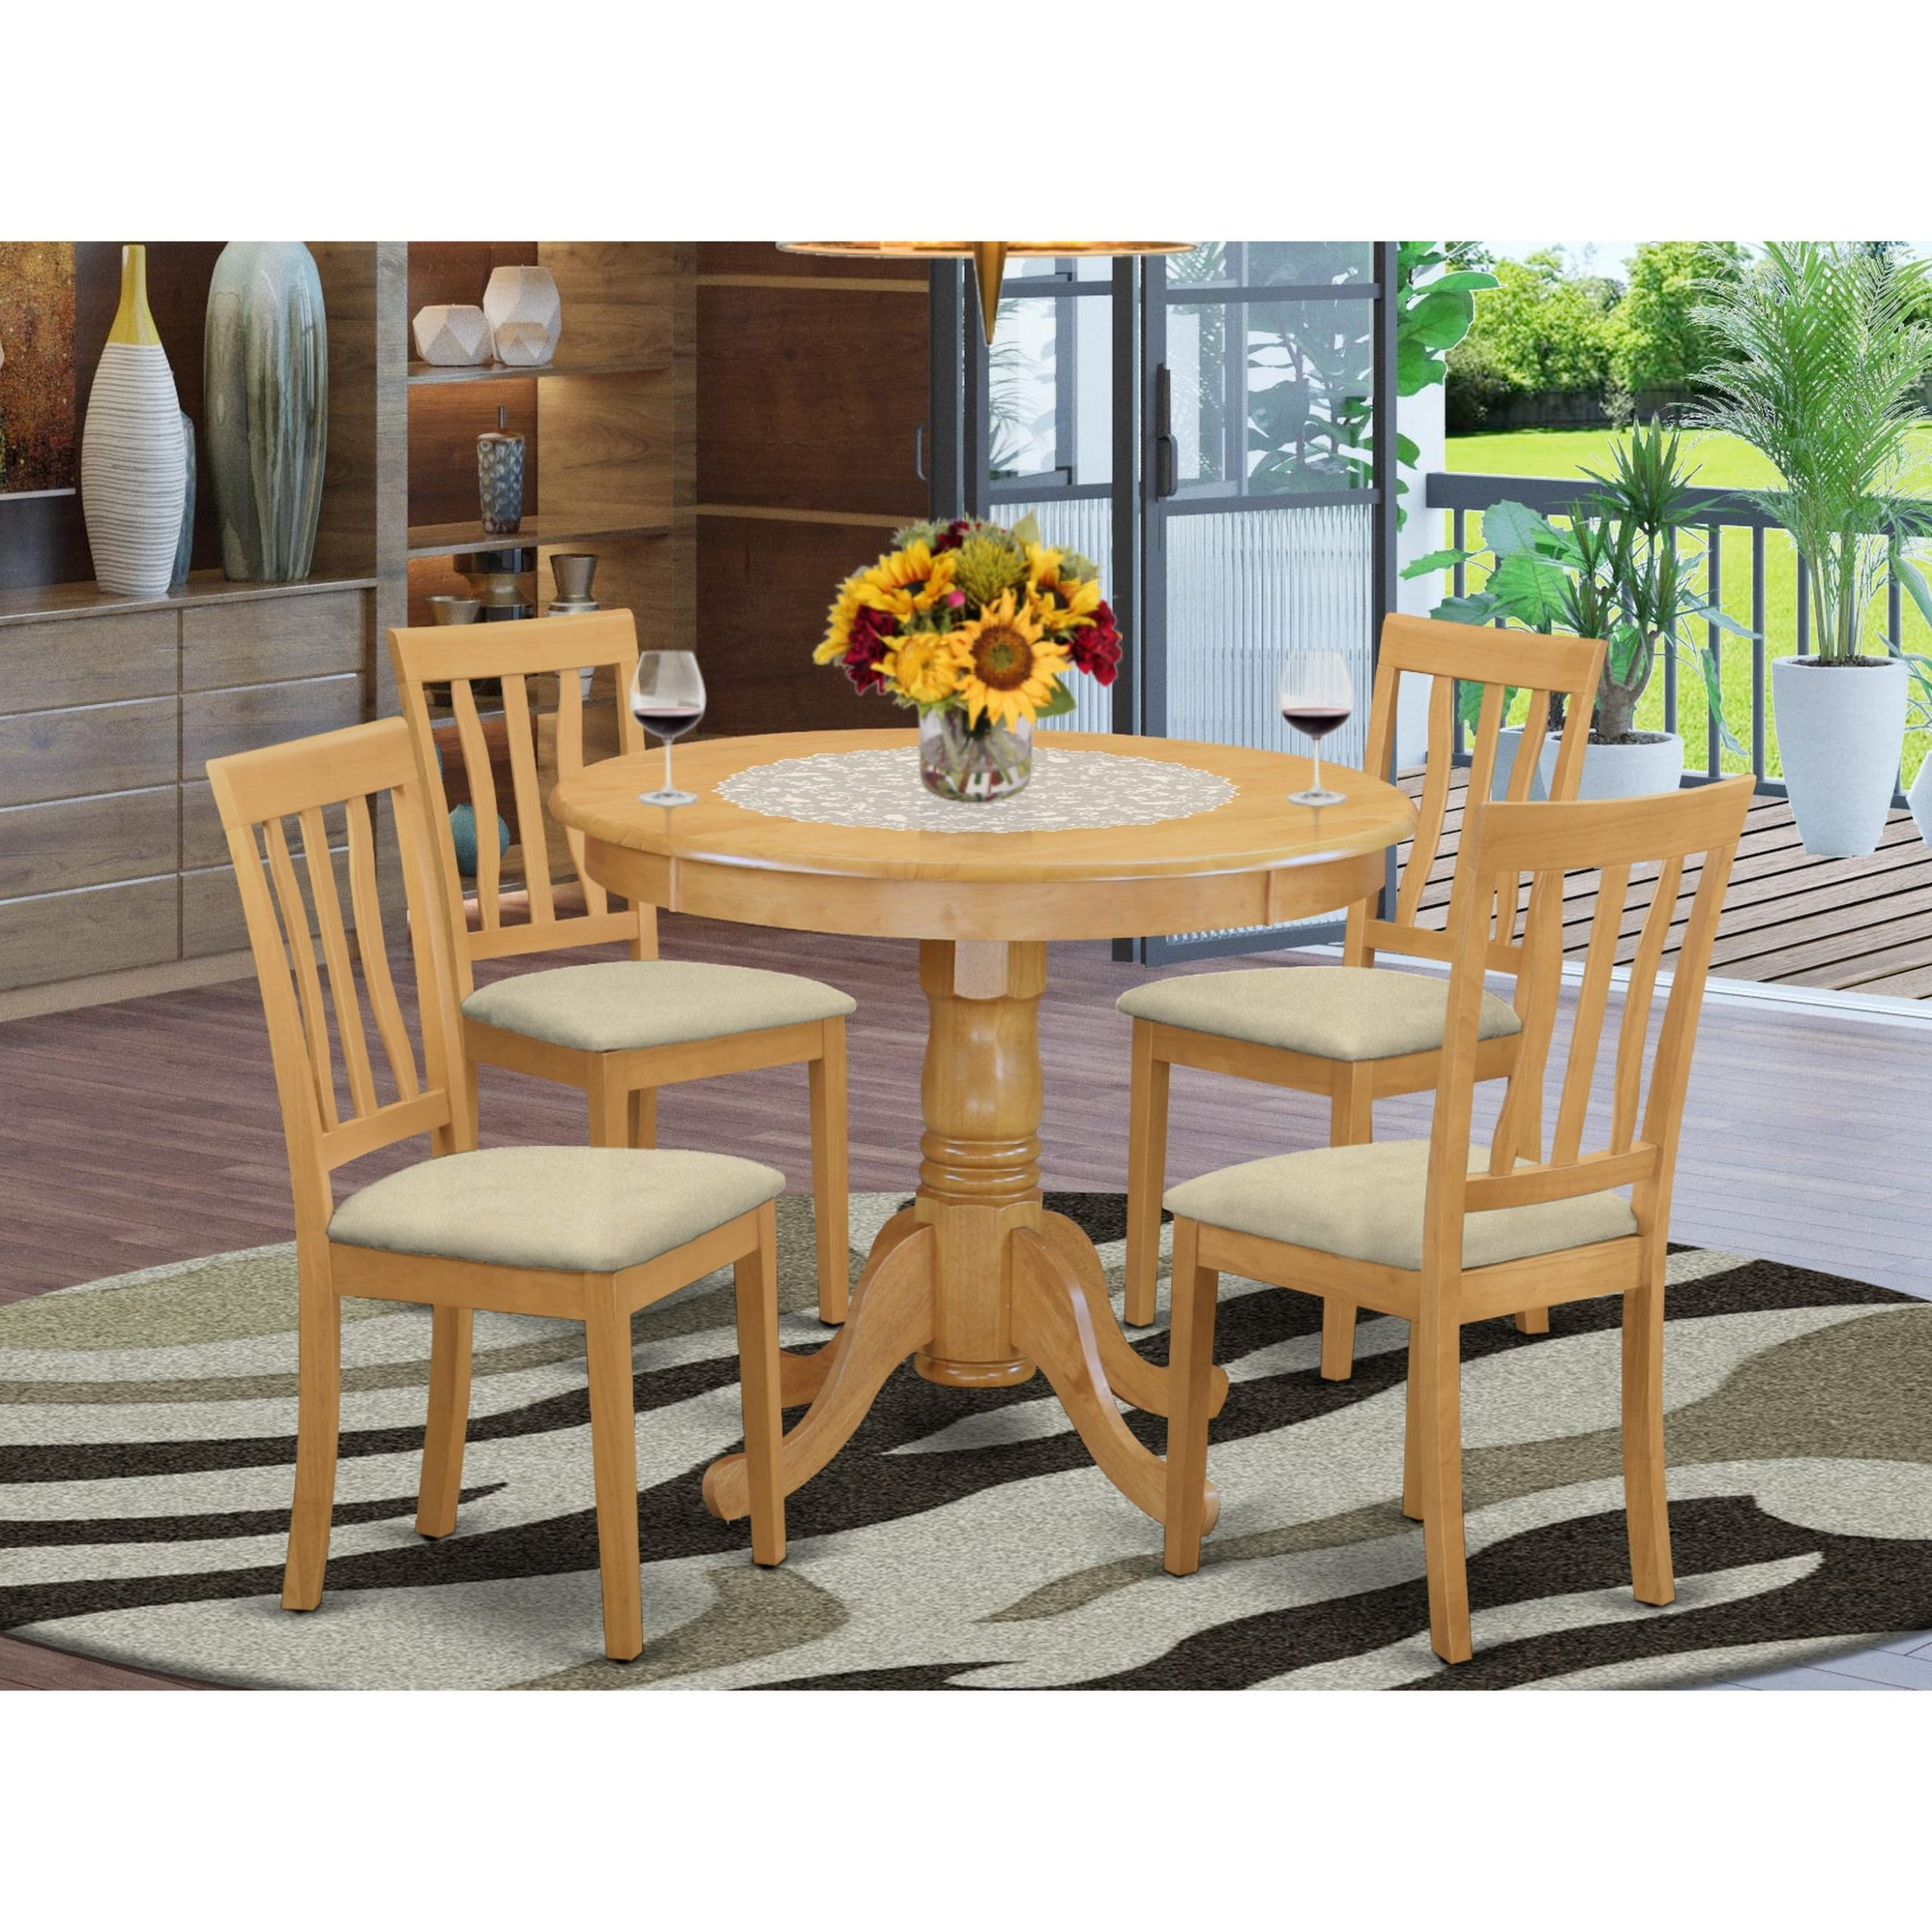 4 chairs and dining table